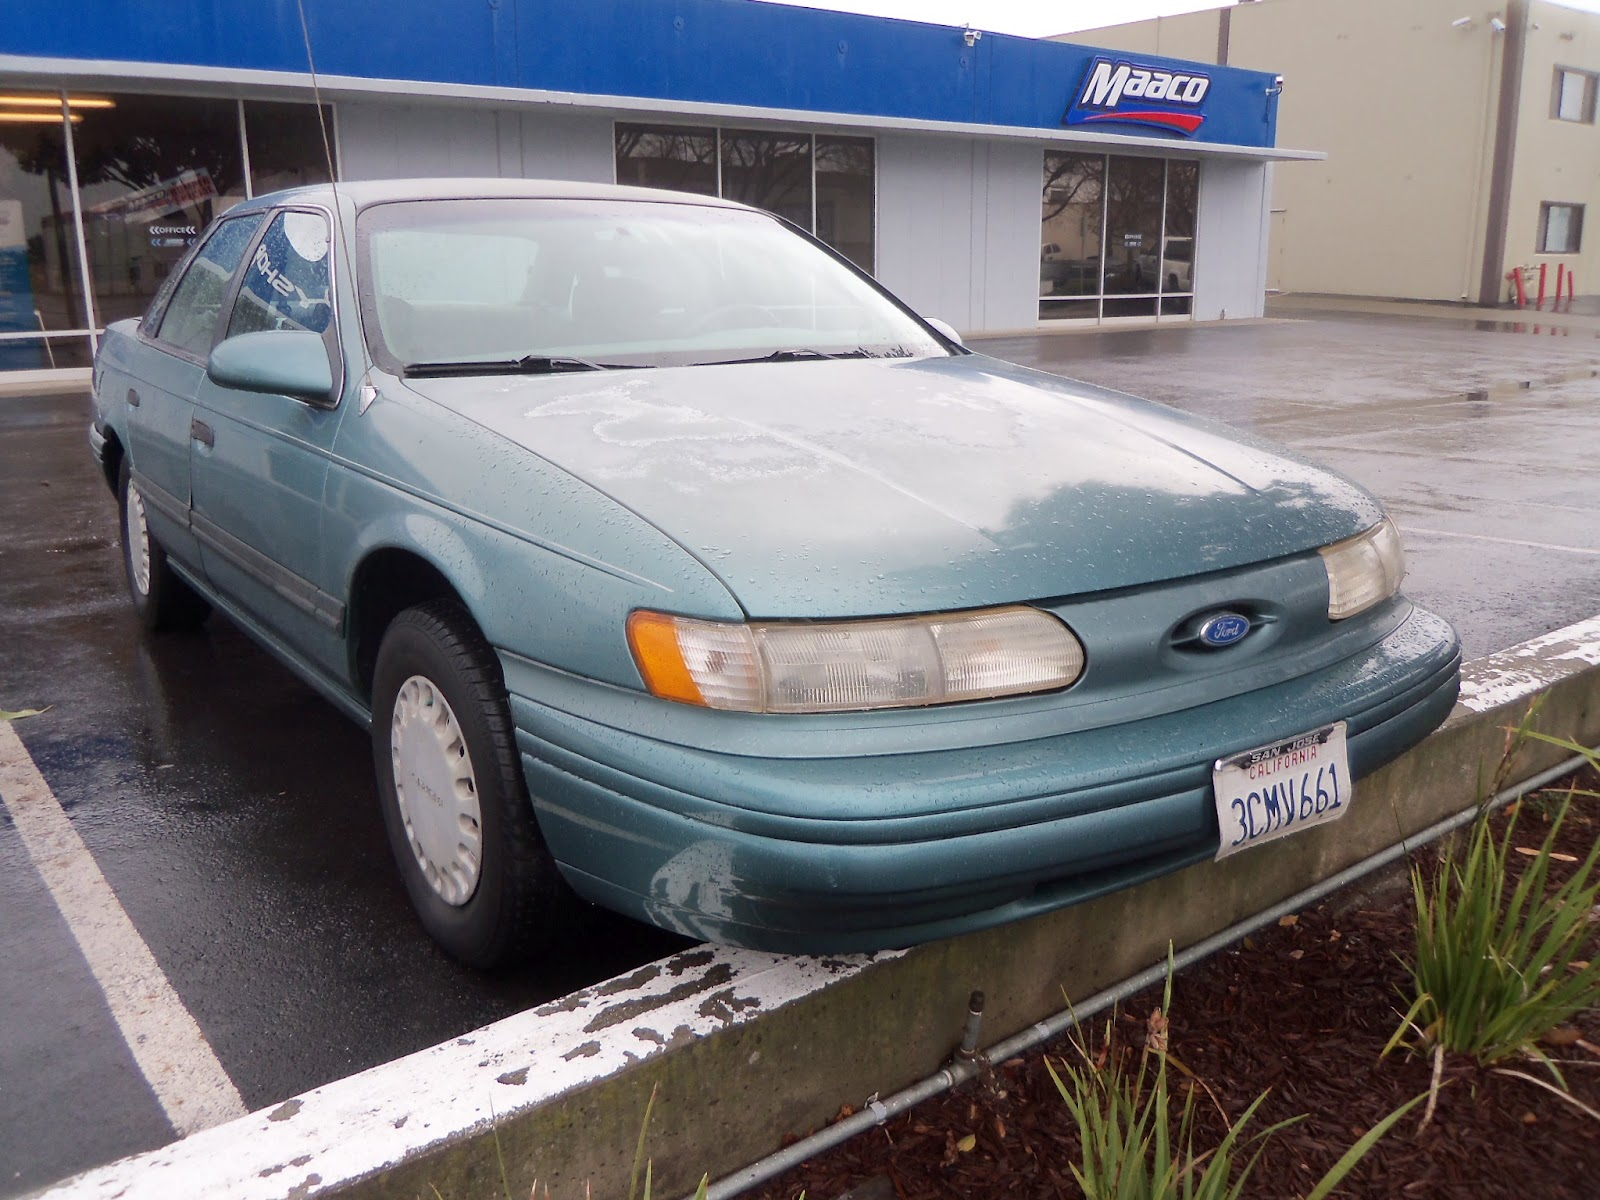 Union City Car Dealerships >> Auto Body-Collision Repair-Car Paint in Fremont-Hayward-Union City-San Francisco Bay: 1993 Ford ...